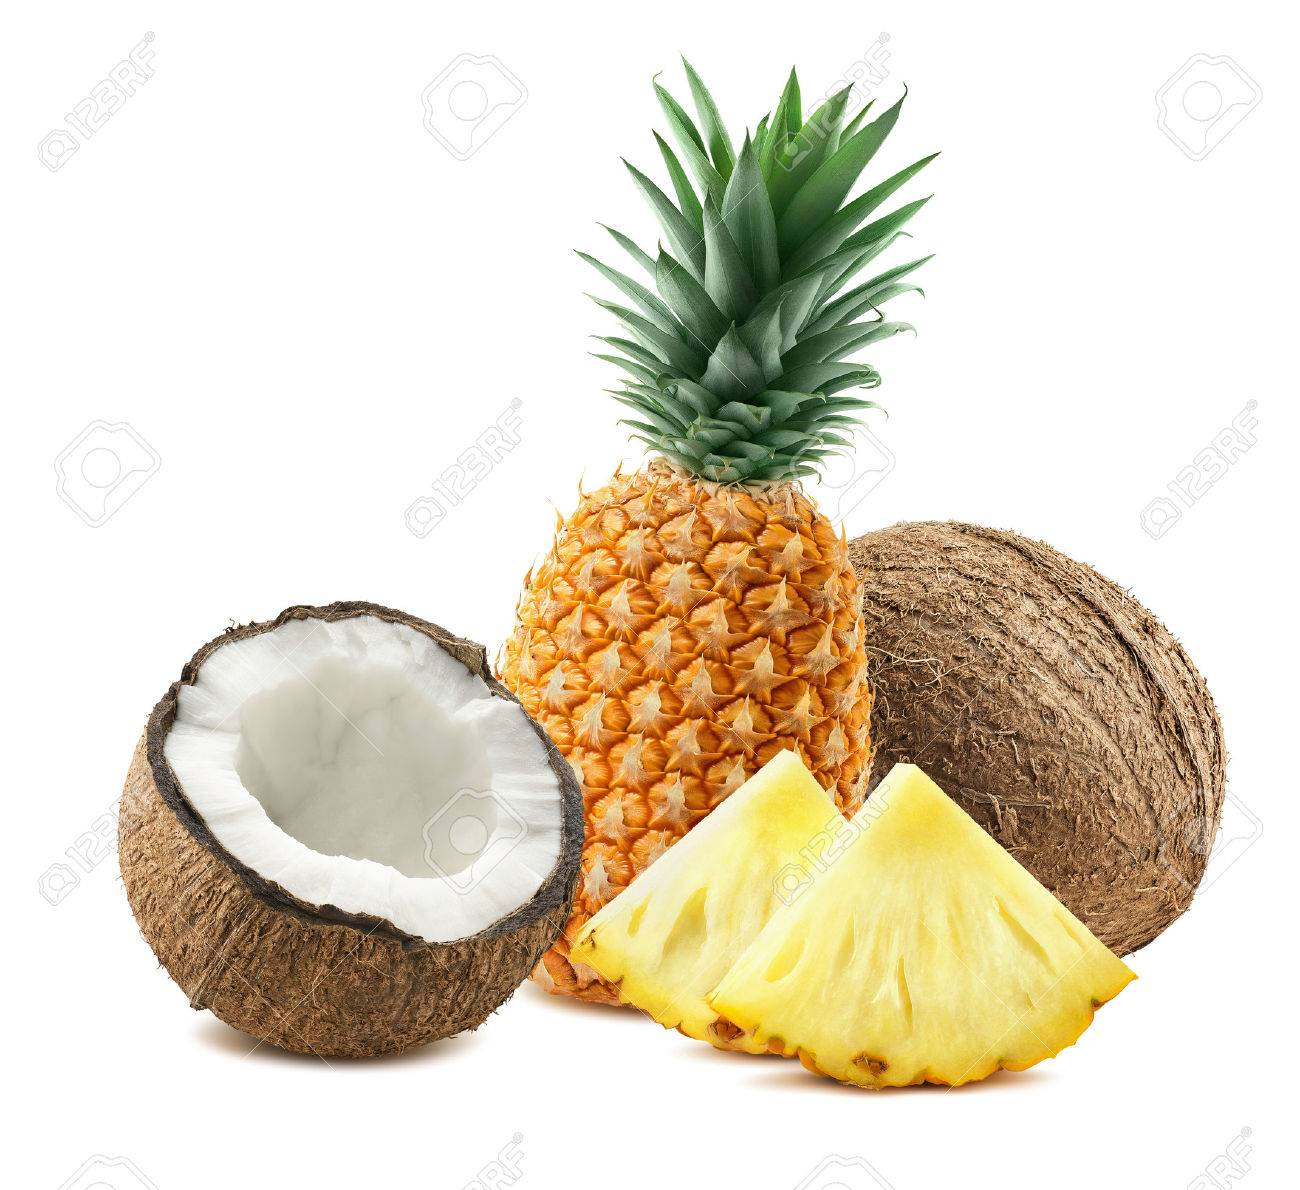 Pineapple whole coconut pieces composition 3 isolated on white background as package design element for tropical cocktails - 51507376